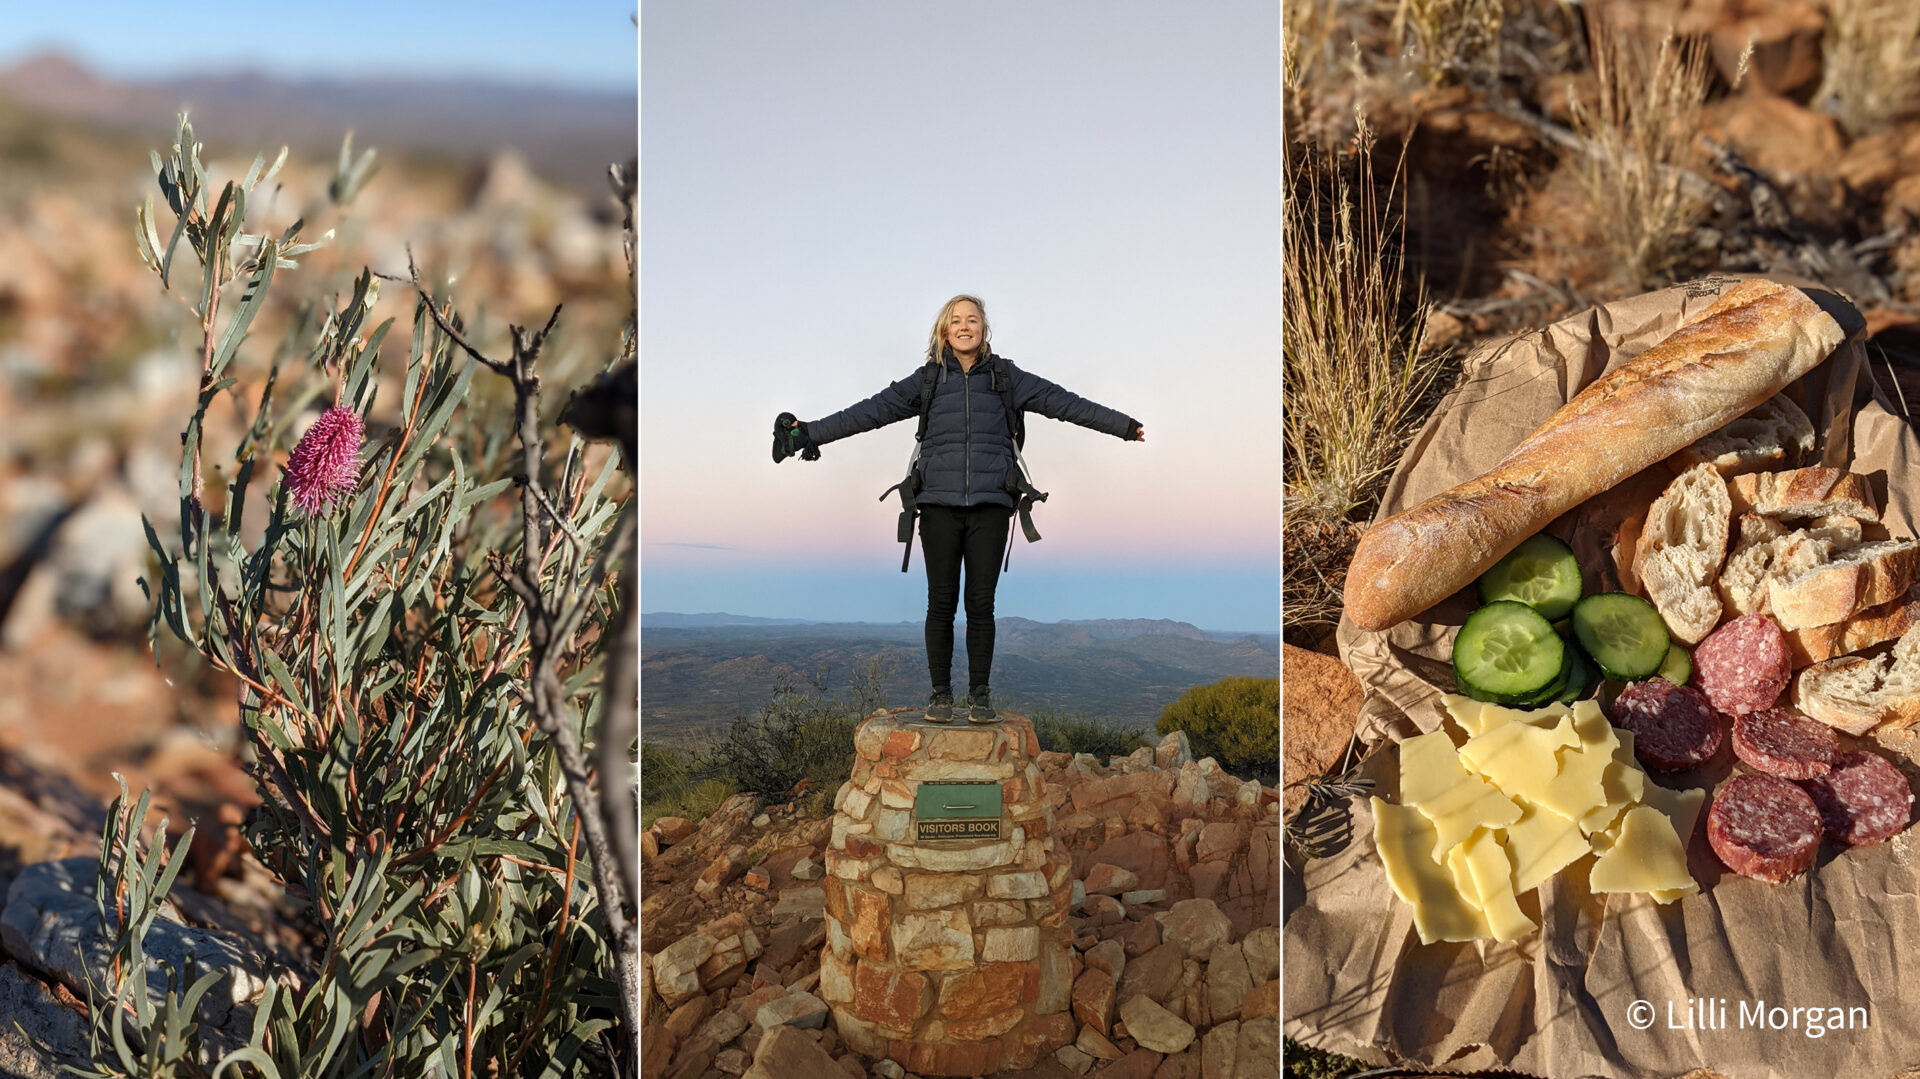 Scenes from the Larapinta Trail